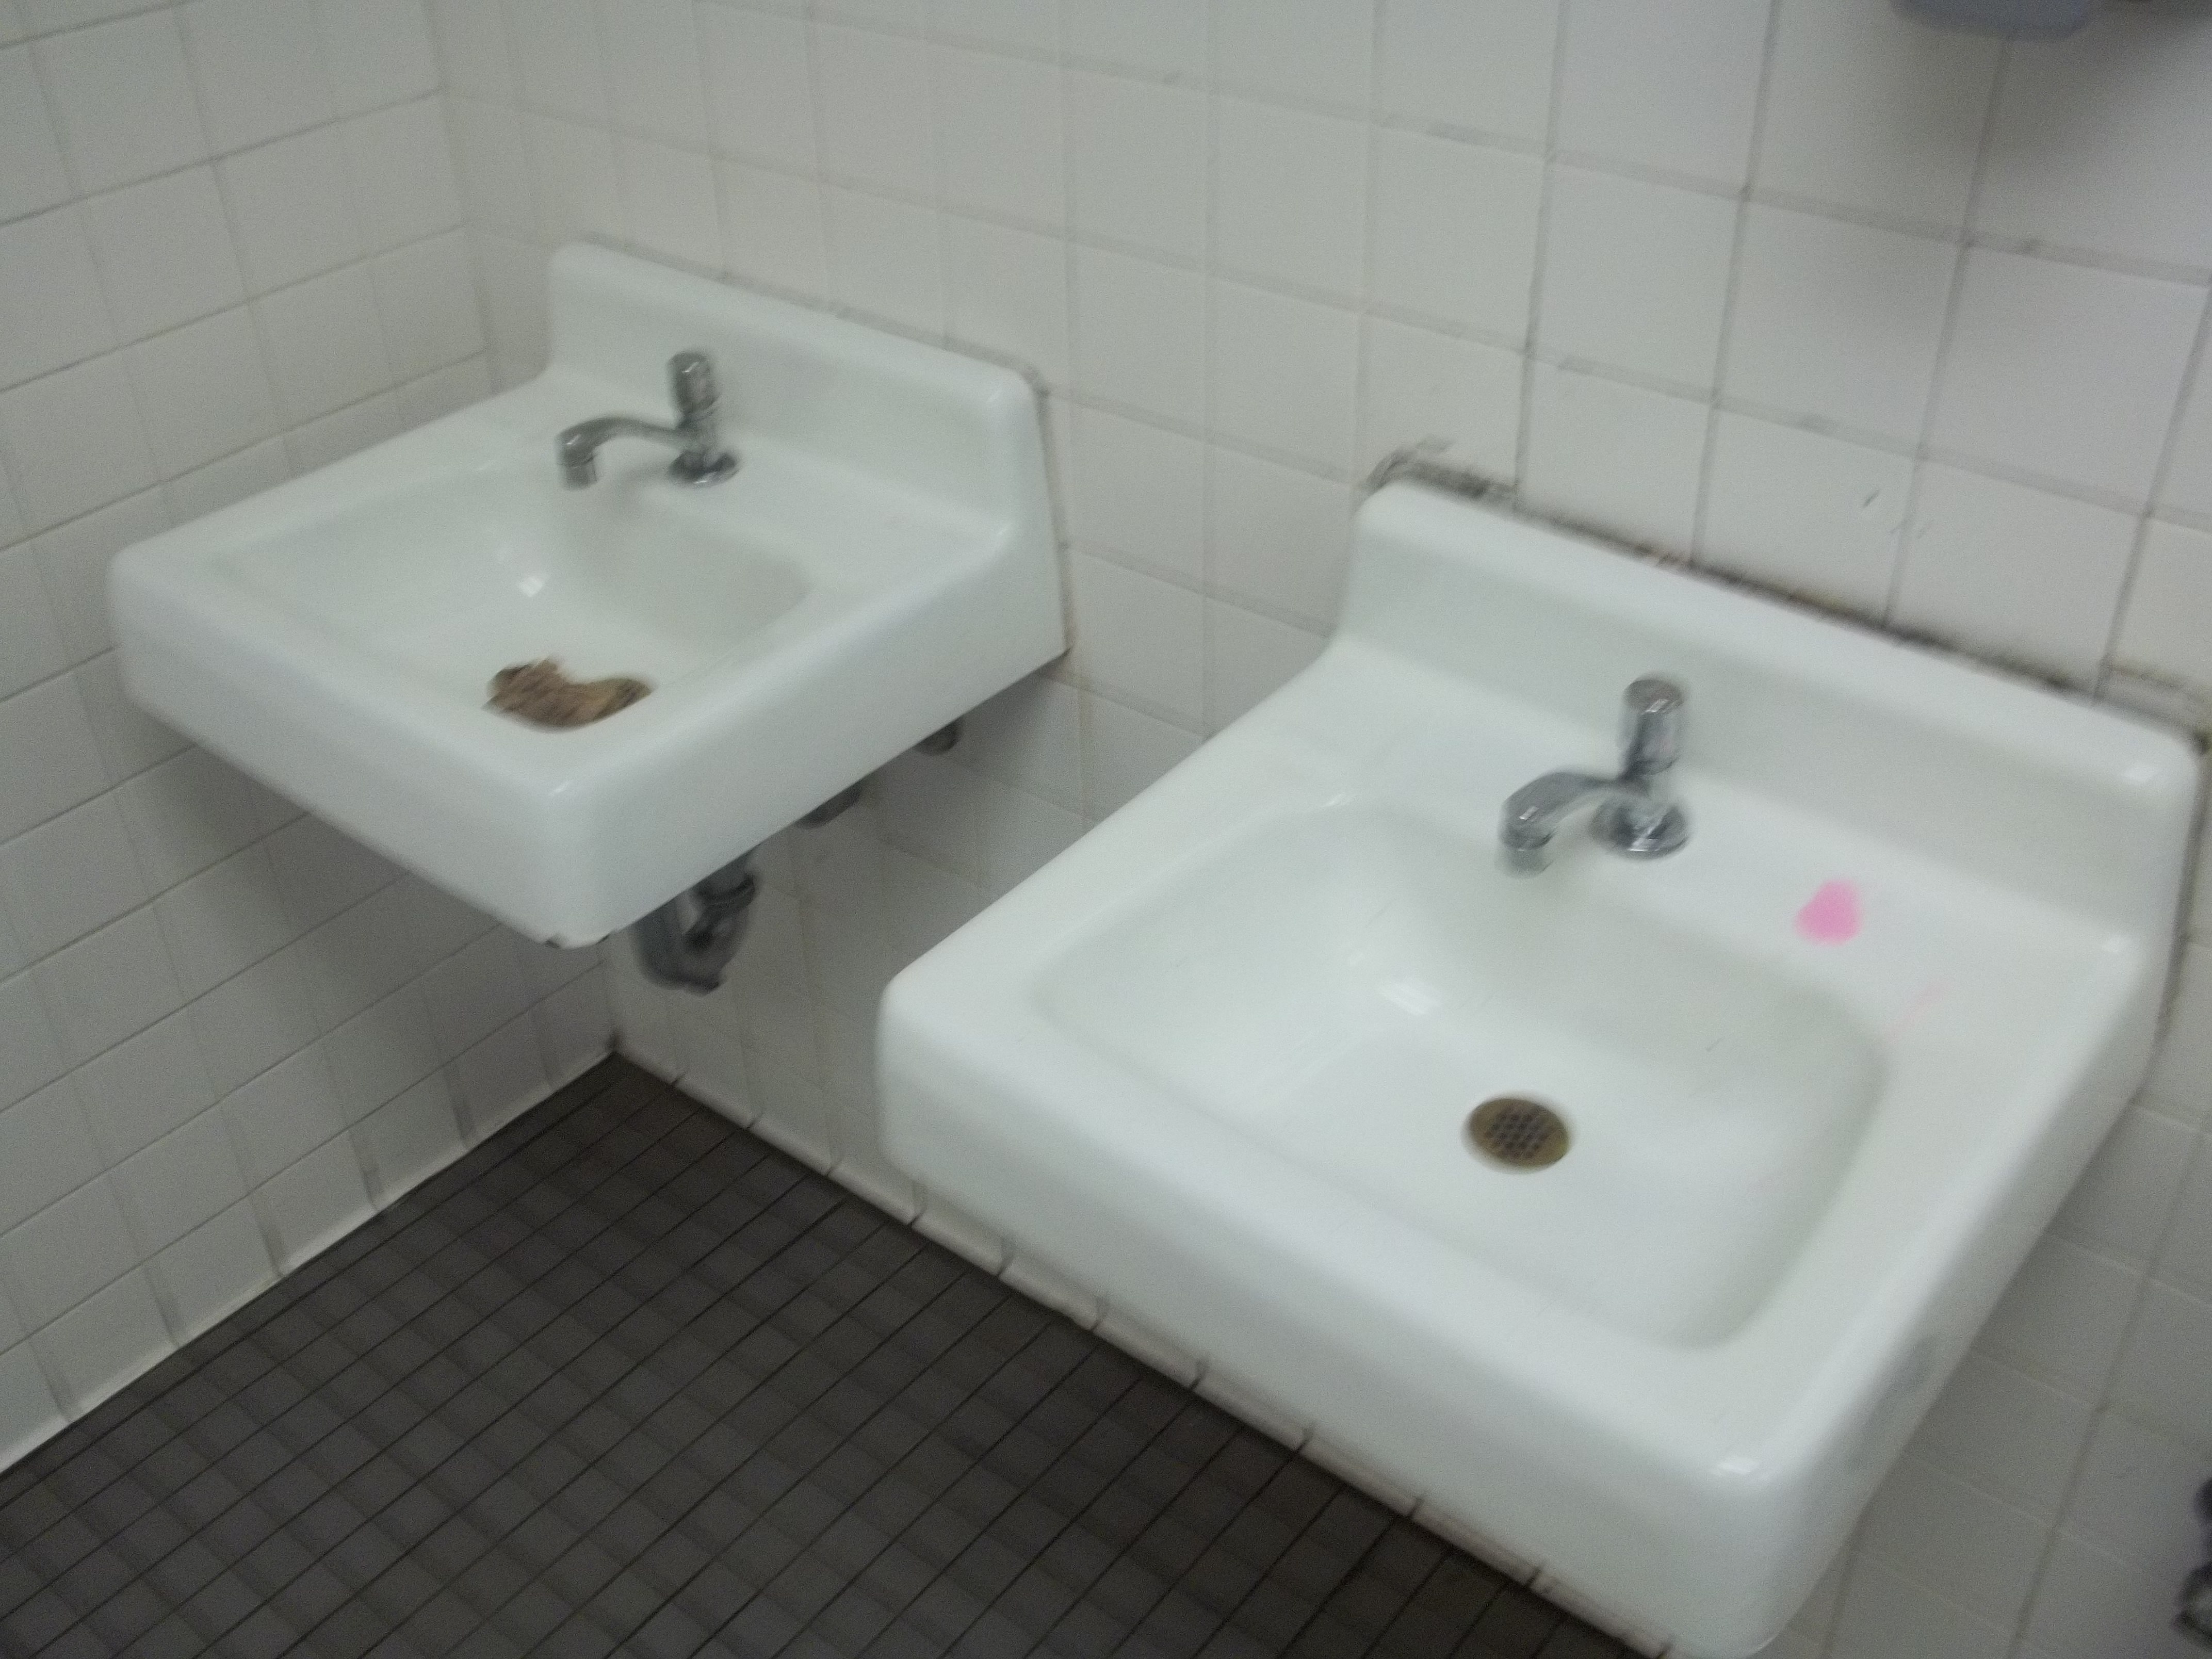 School Bathroom Sinks : School Sinks Related Keywords & Suggestions - School Sinks Long Tail ...